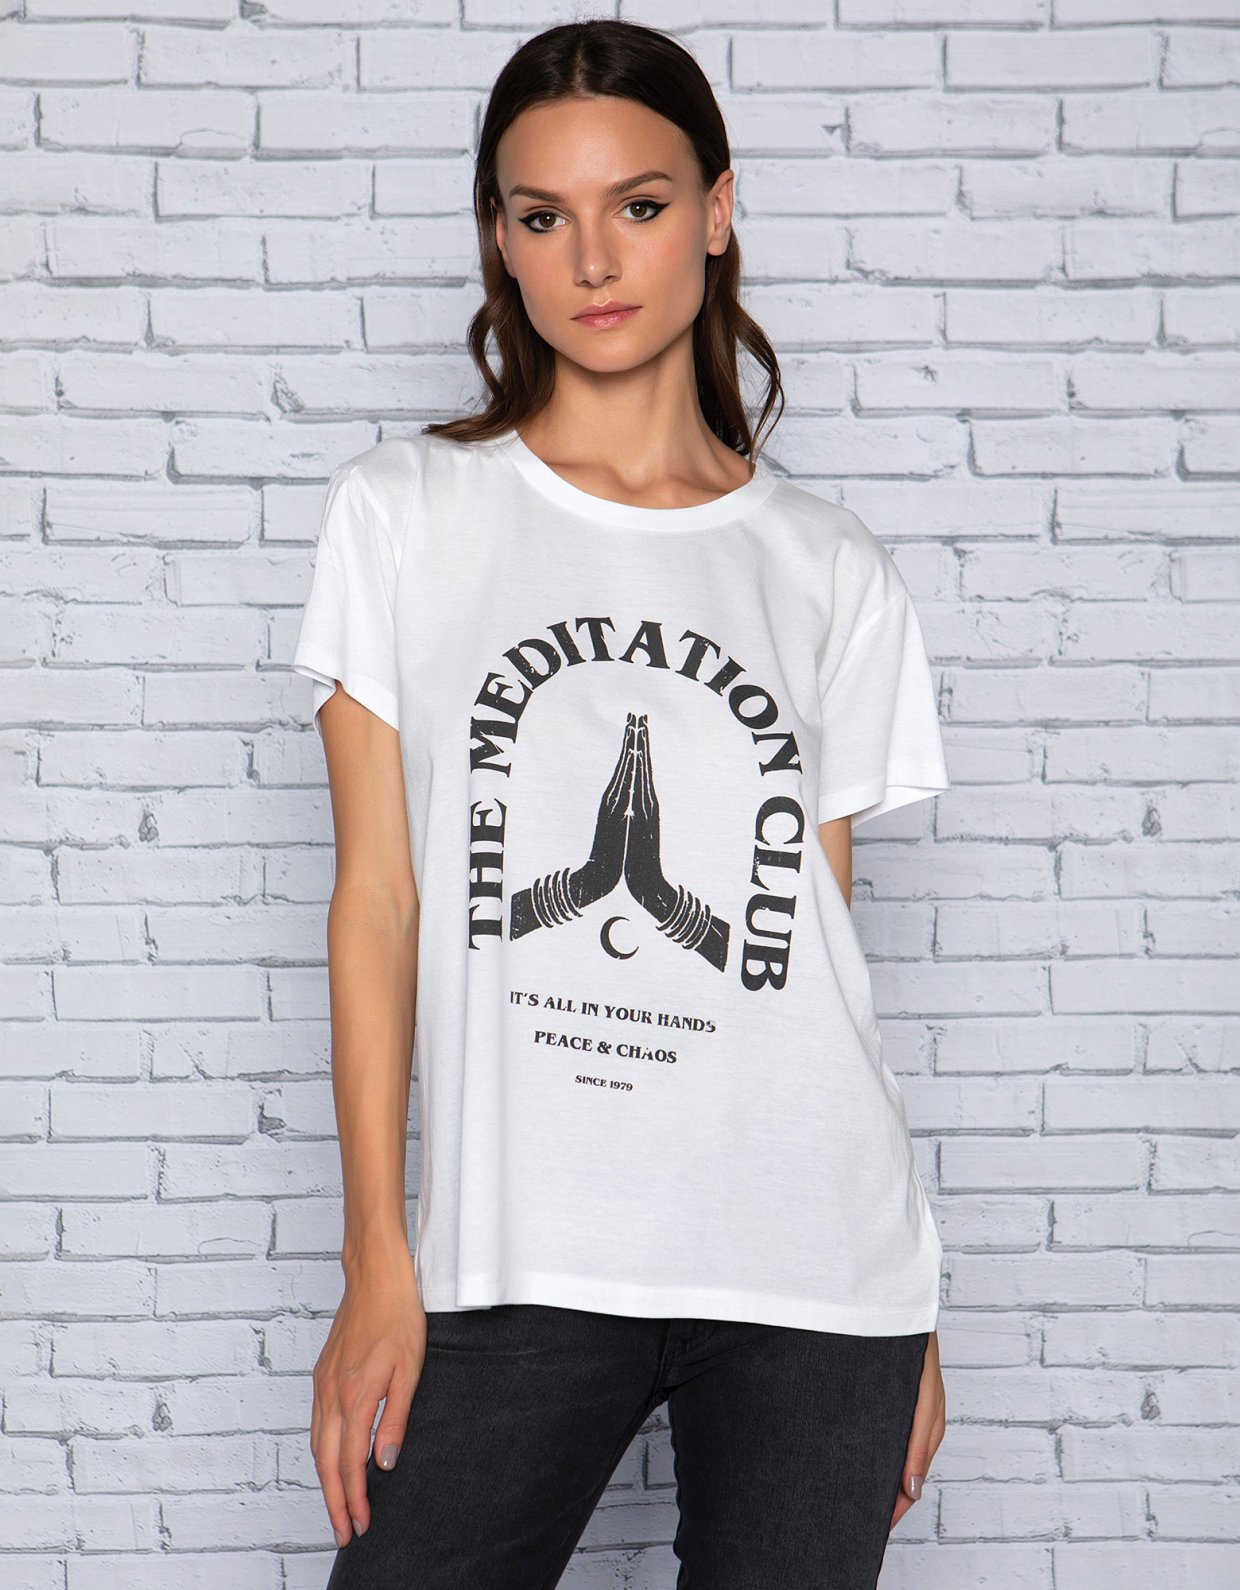 Peace & Chaos Meditation club t-shirt